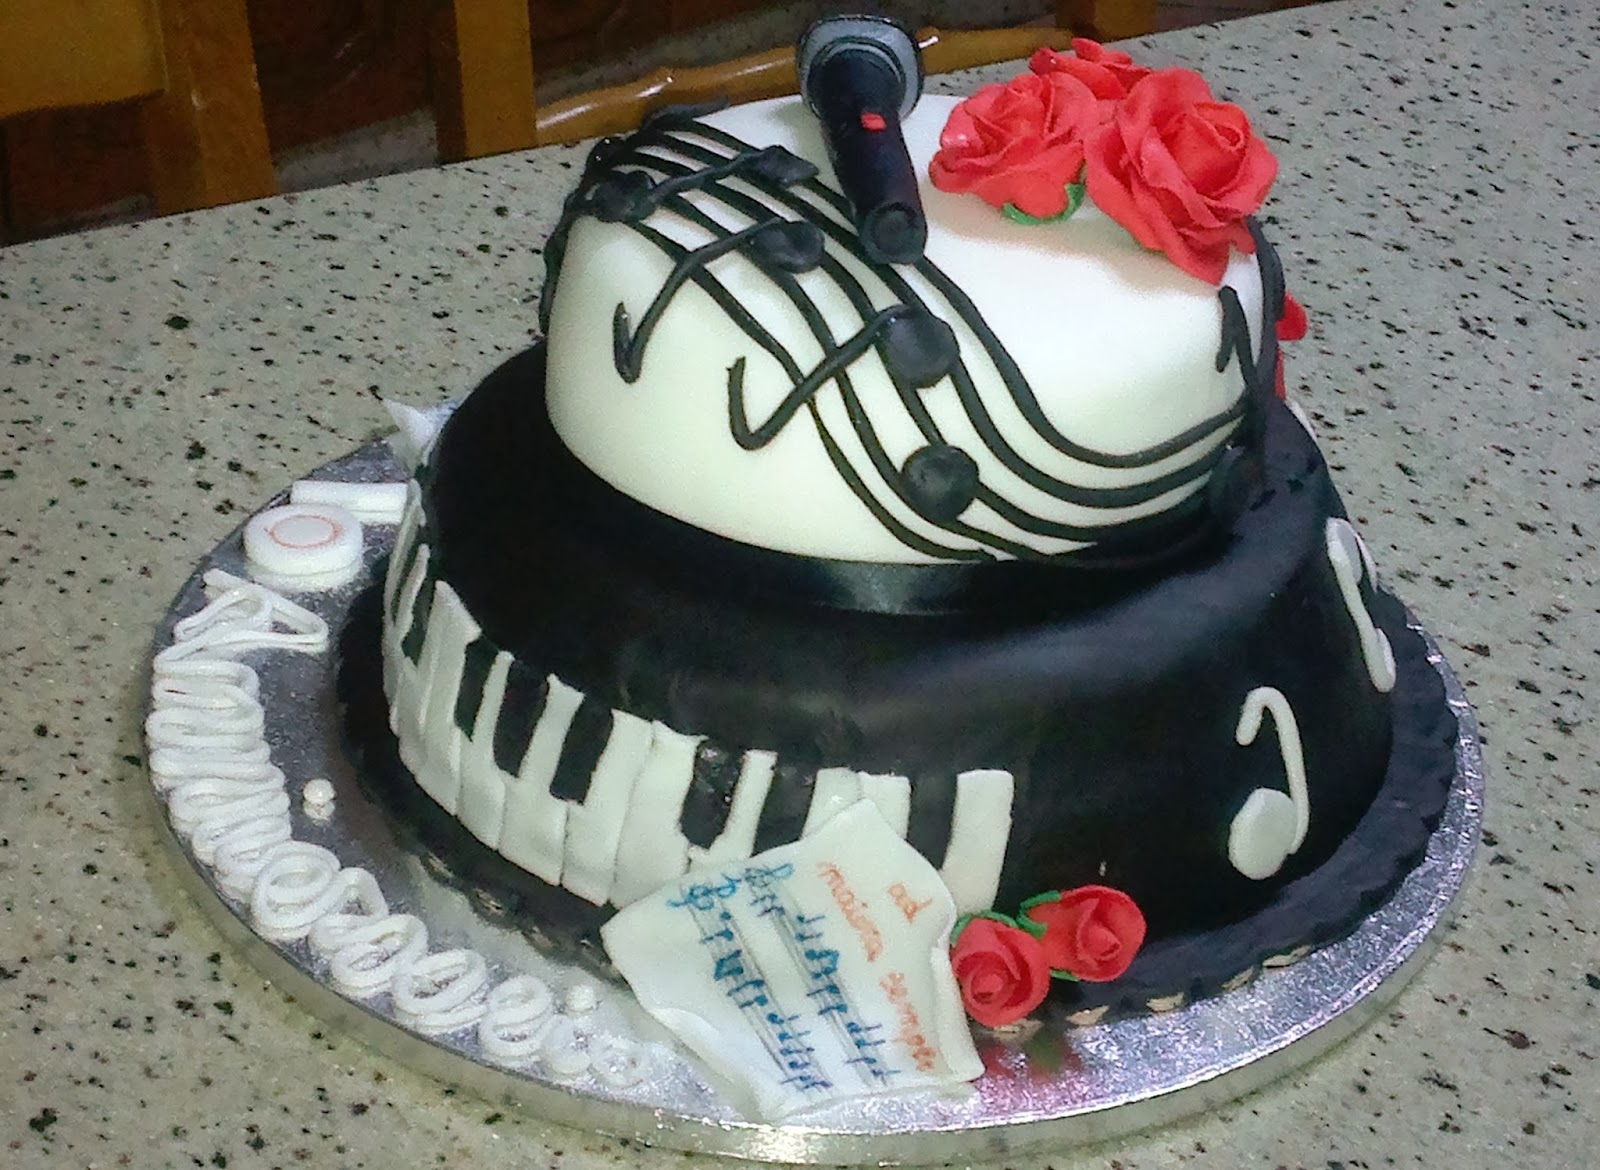 Strumenti Cake Design Torino : SCHOOL OF SUGARCRAFT: Music cake or torta musicale ...